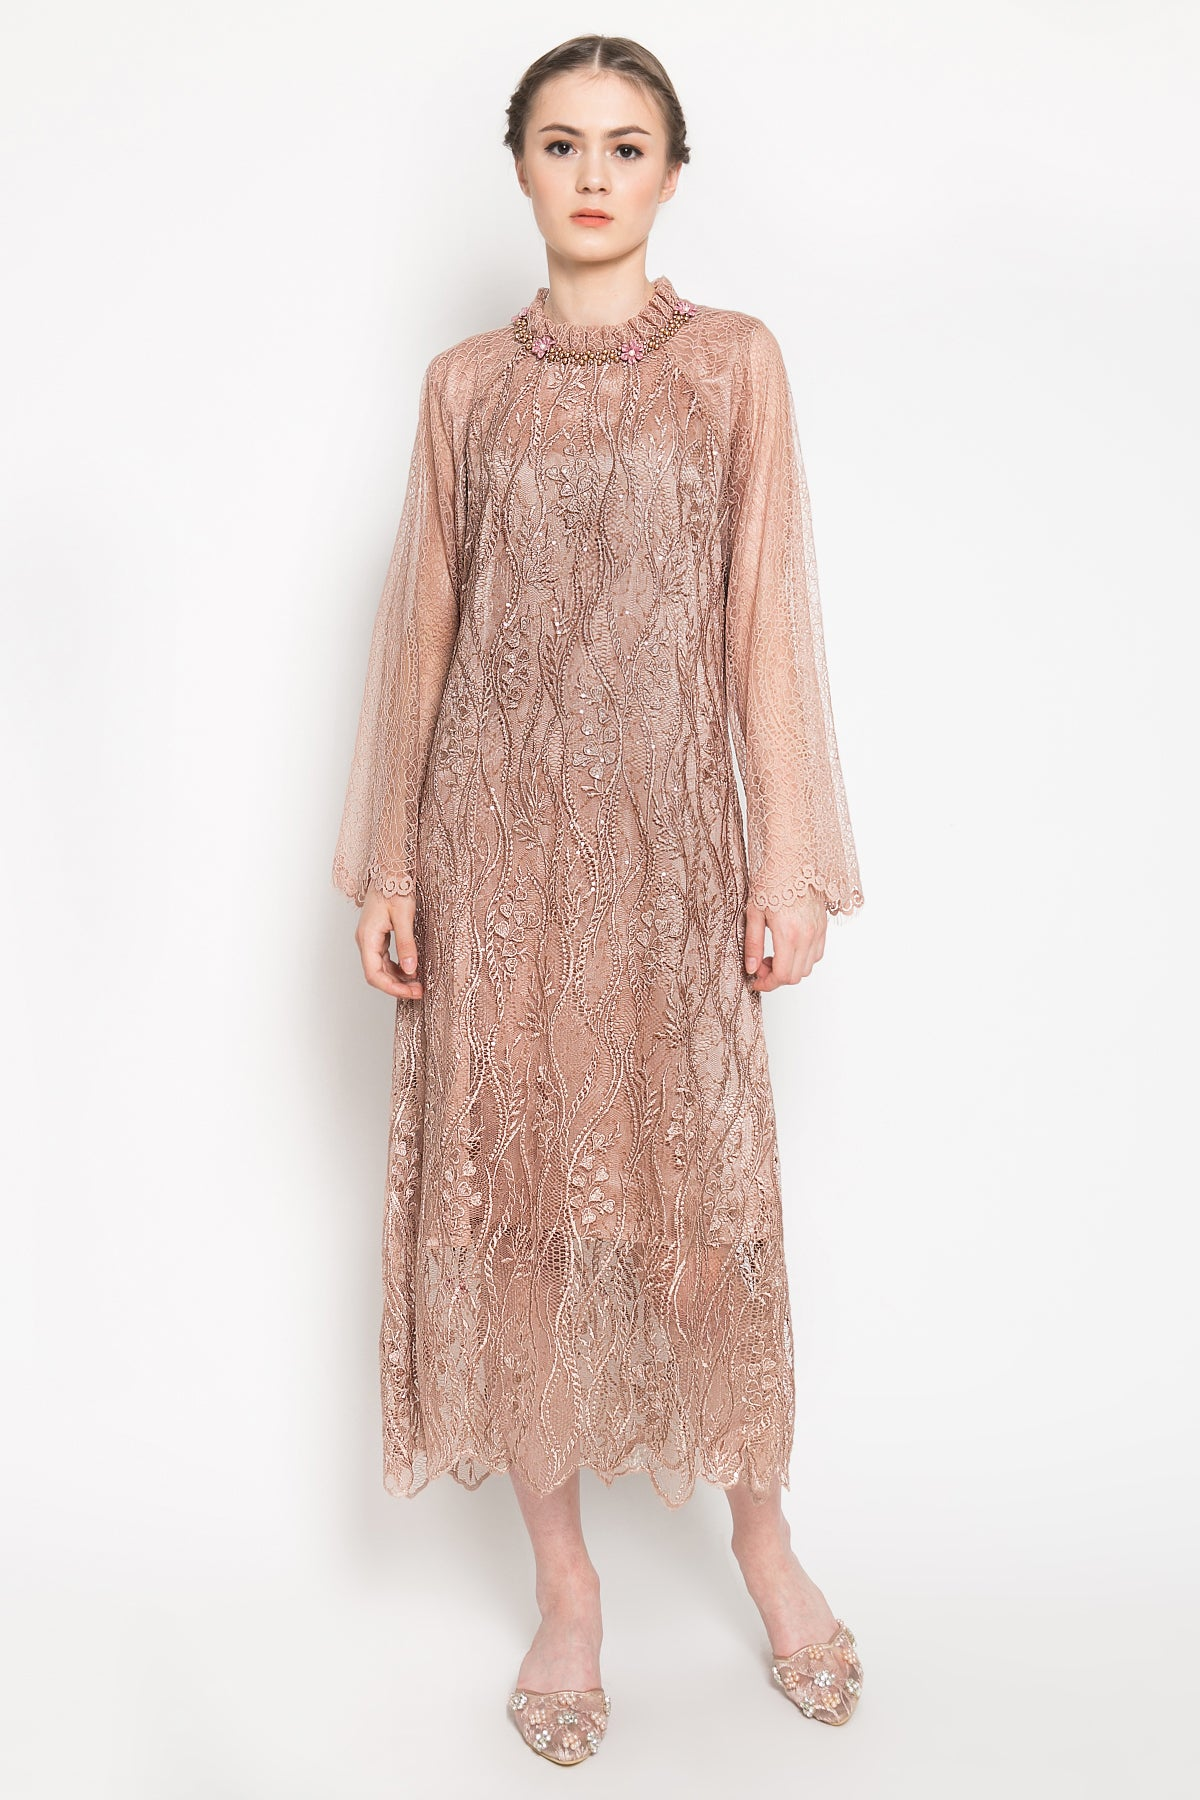 Kirana Dress in Rosegold